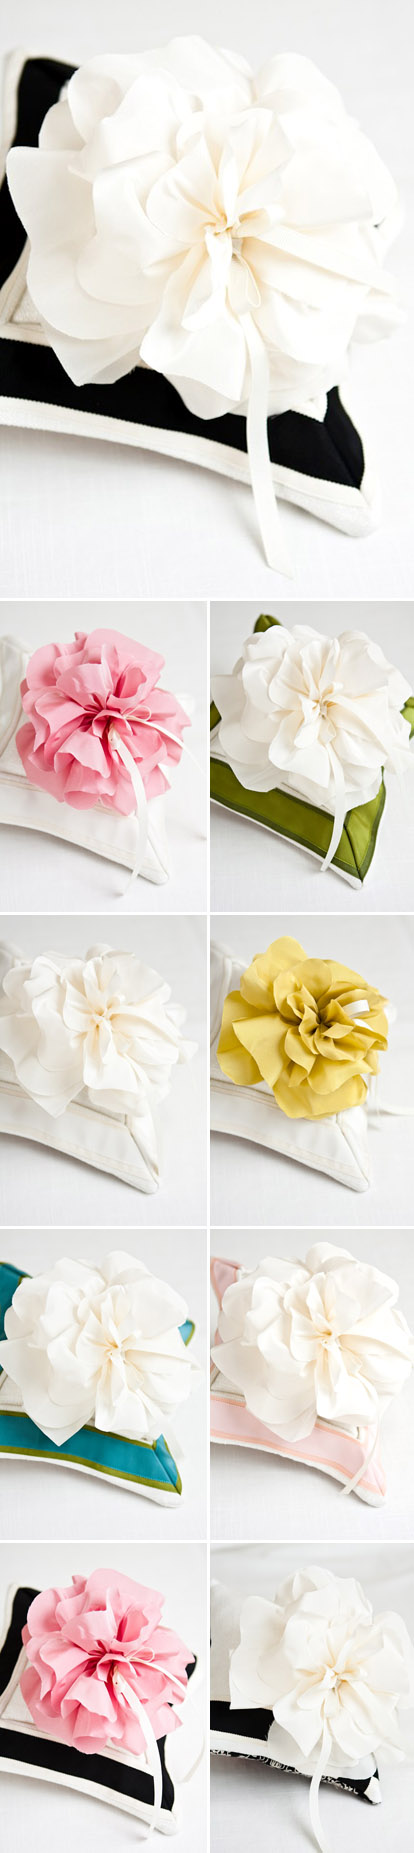 Pretty over sized fabric flower wedding ring bearer pillows from Maihar Design